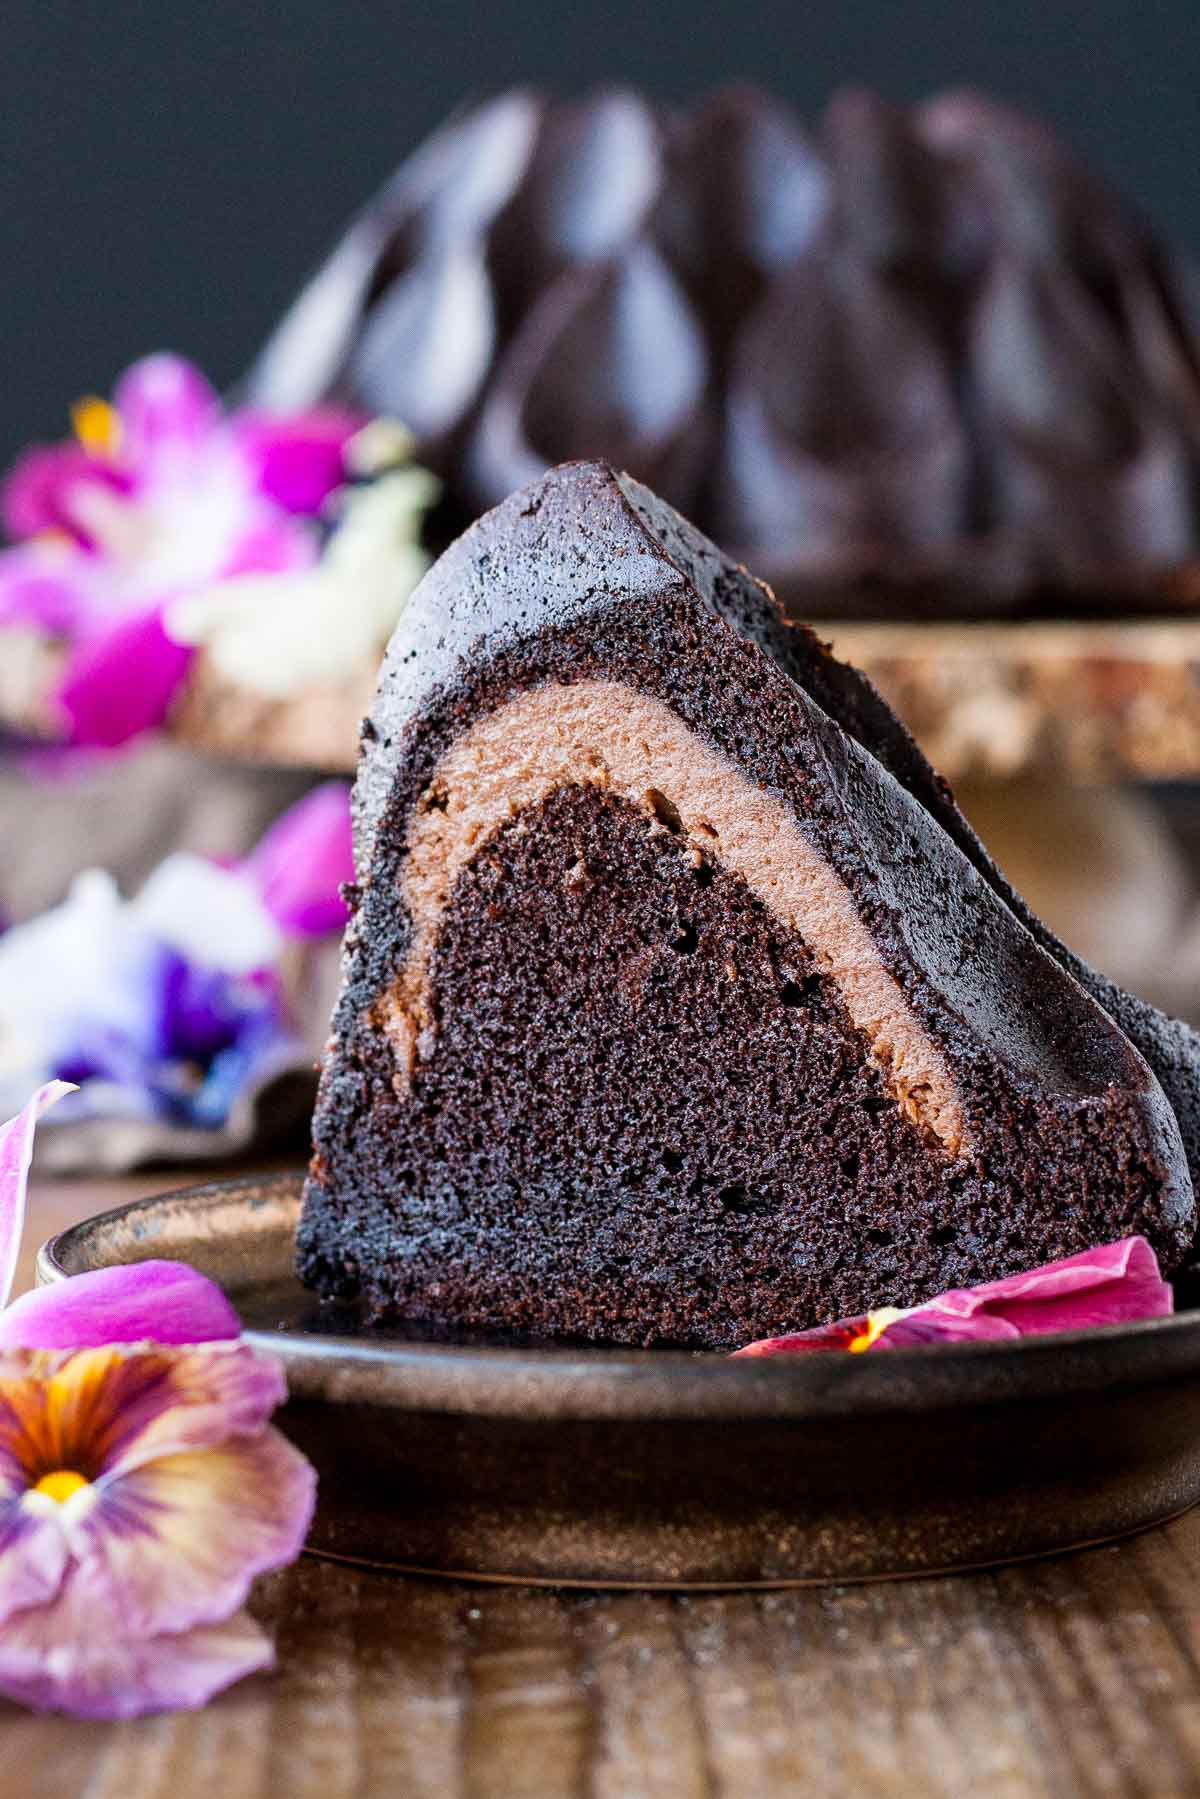 Chocolate Cheesecake Stuffed Bundt Cake Liv For Double Layer Cheese Original The In This Delicious